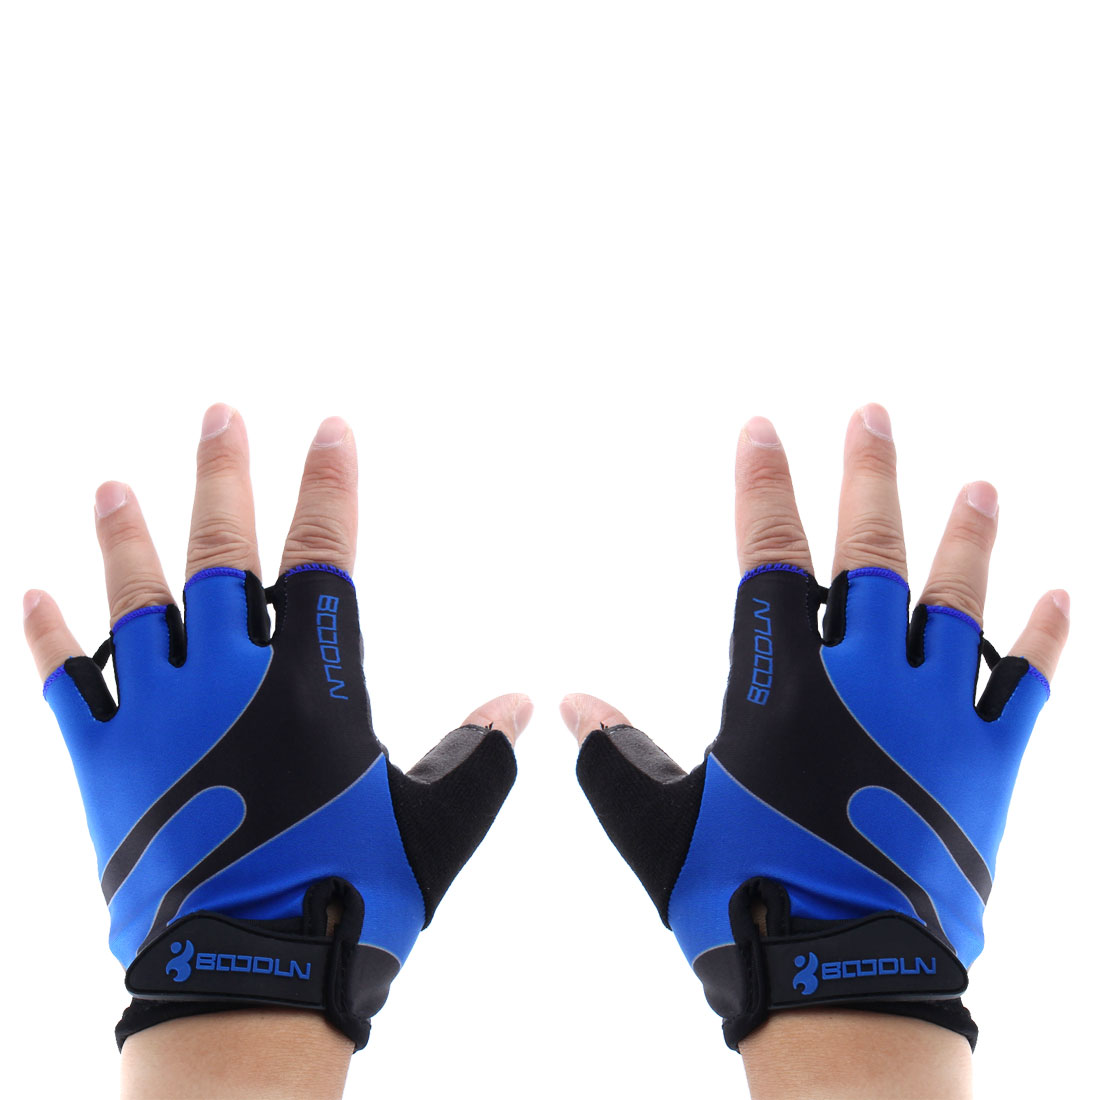 BOODUN Authorized Polyester Exercise Sports Lifting Training Bodybuilding Wrist Protector Half Finger Fitness Gloves Blue S Pair